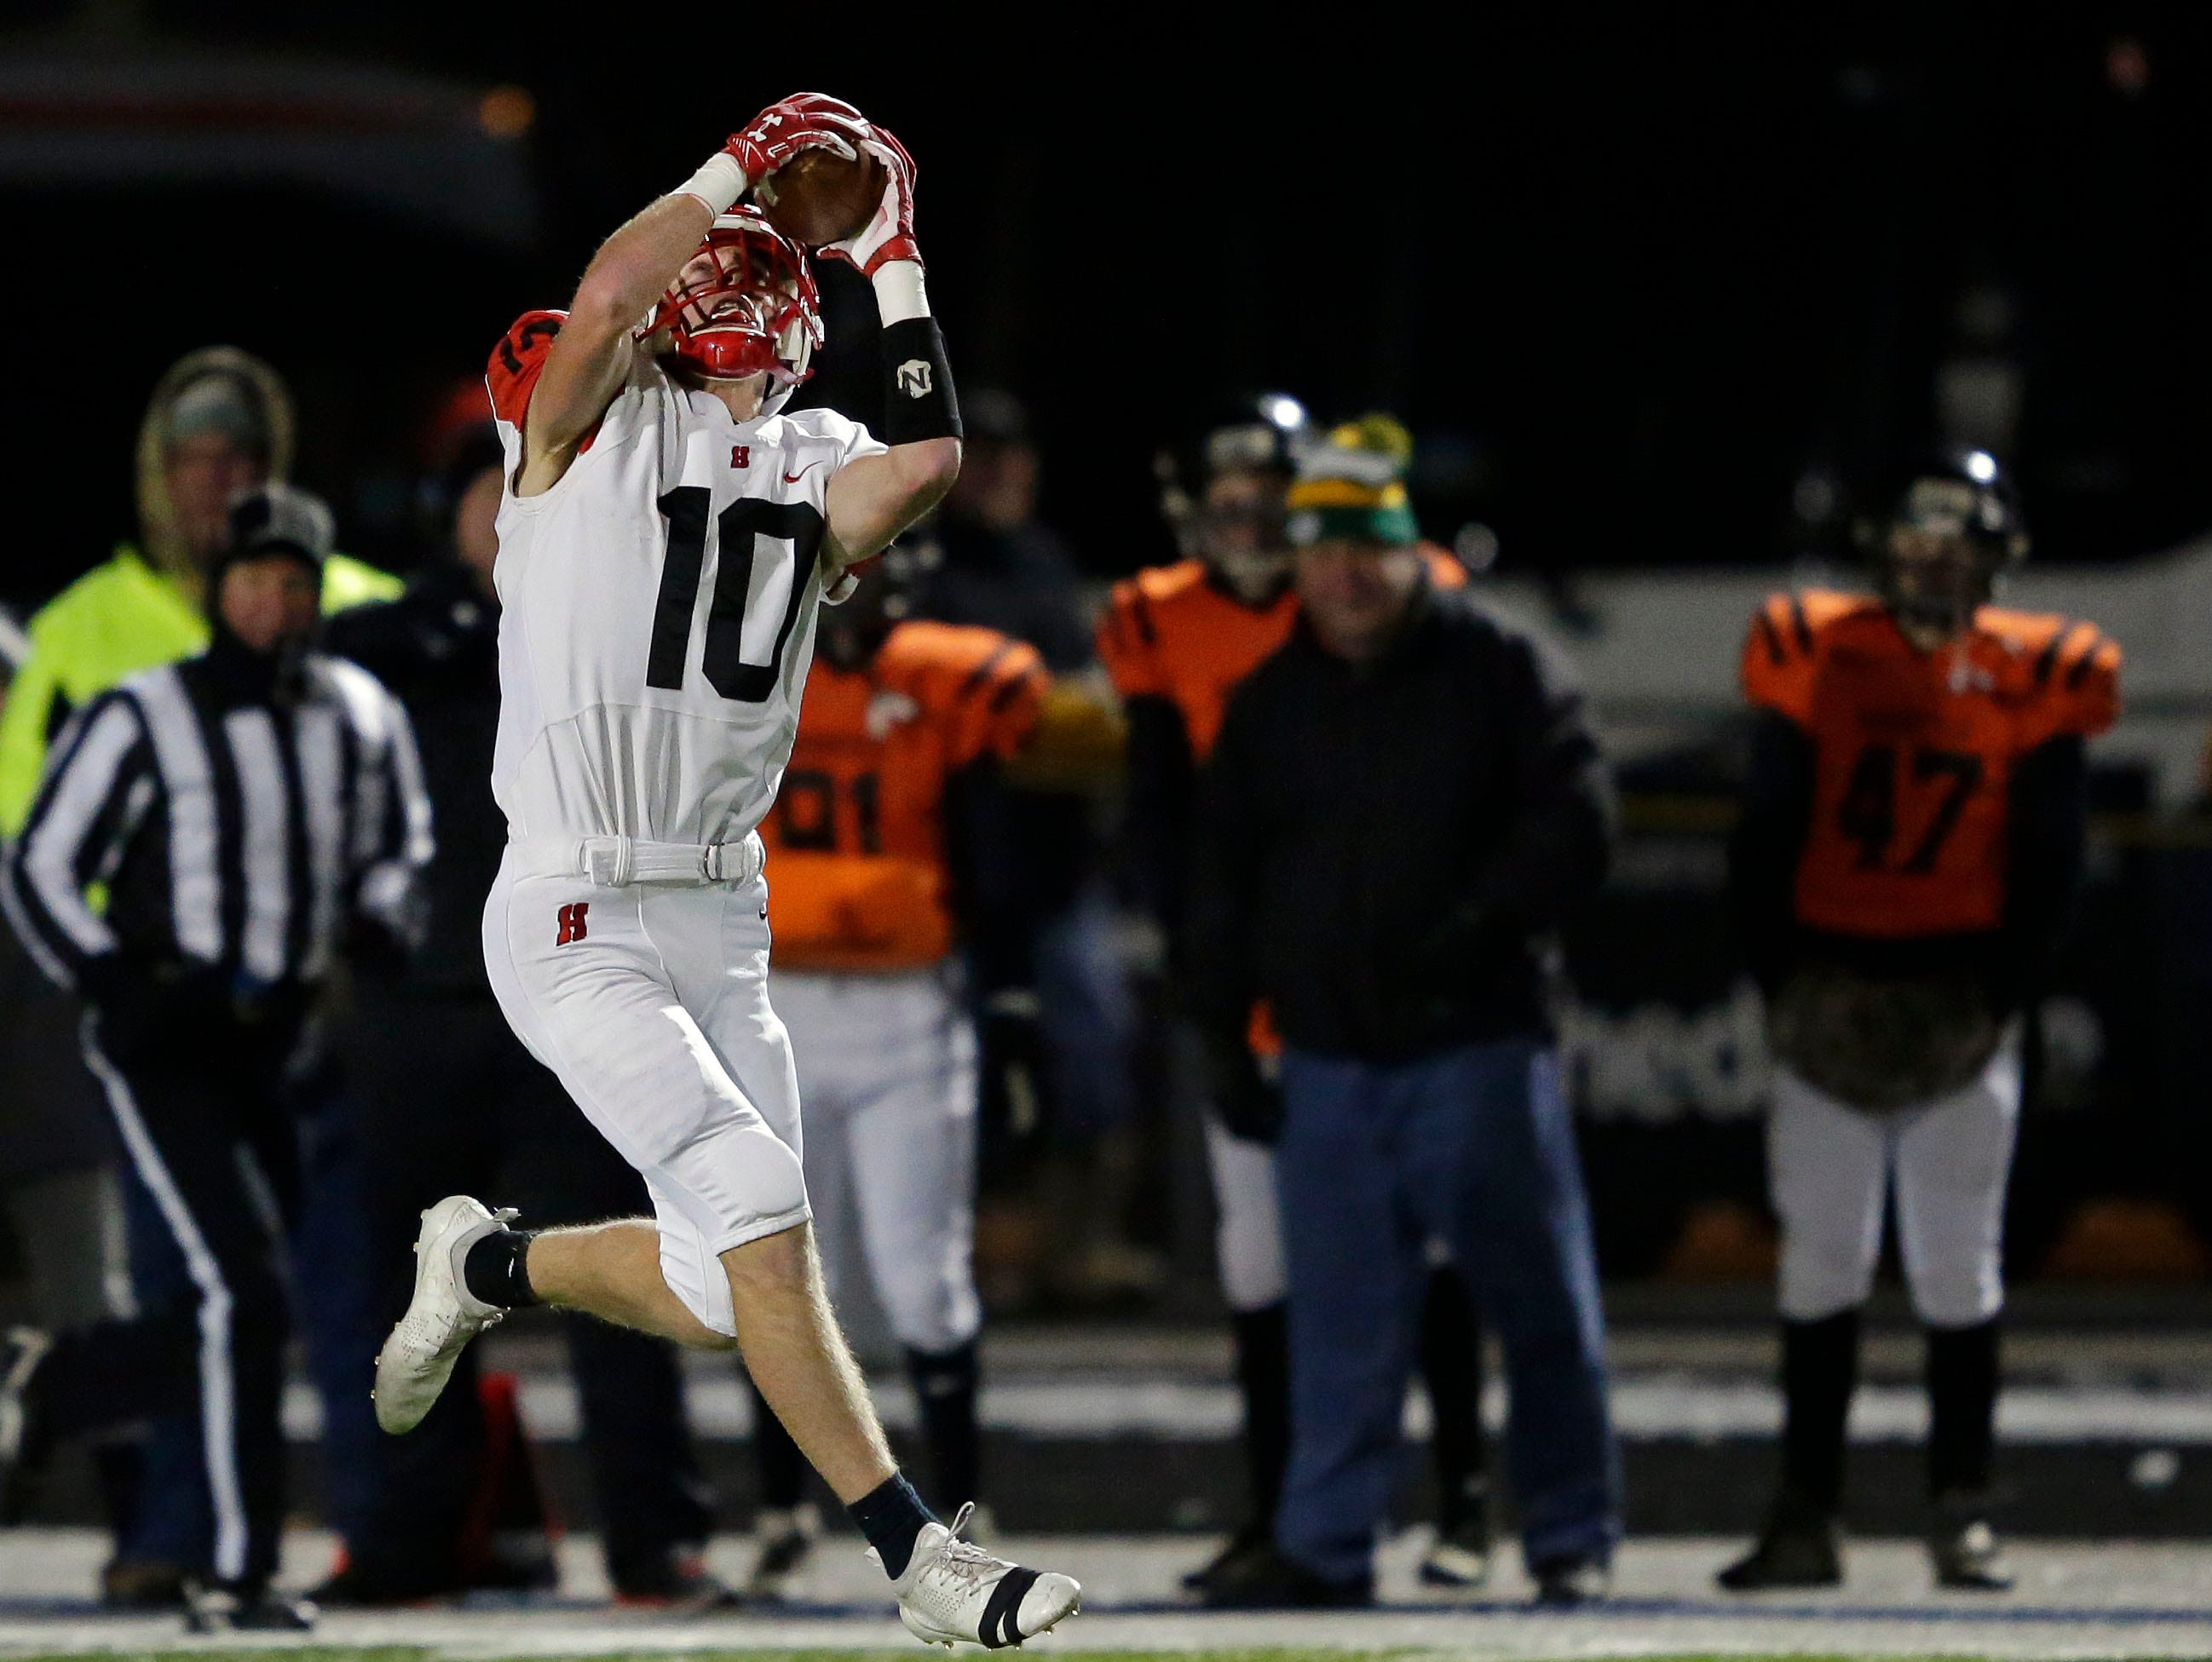 Jared Schneider of Homestead pulls in a pass against Marshfield in a WIAA Division 2 state semifinal football game Friday, November 9, 2018, at Calder Stadium in Menasha, Wis.Ron Page/USA TODAY NETWORK-Wisconsin